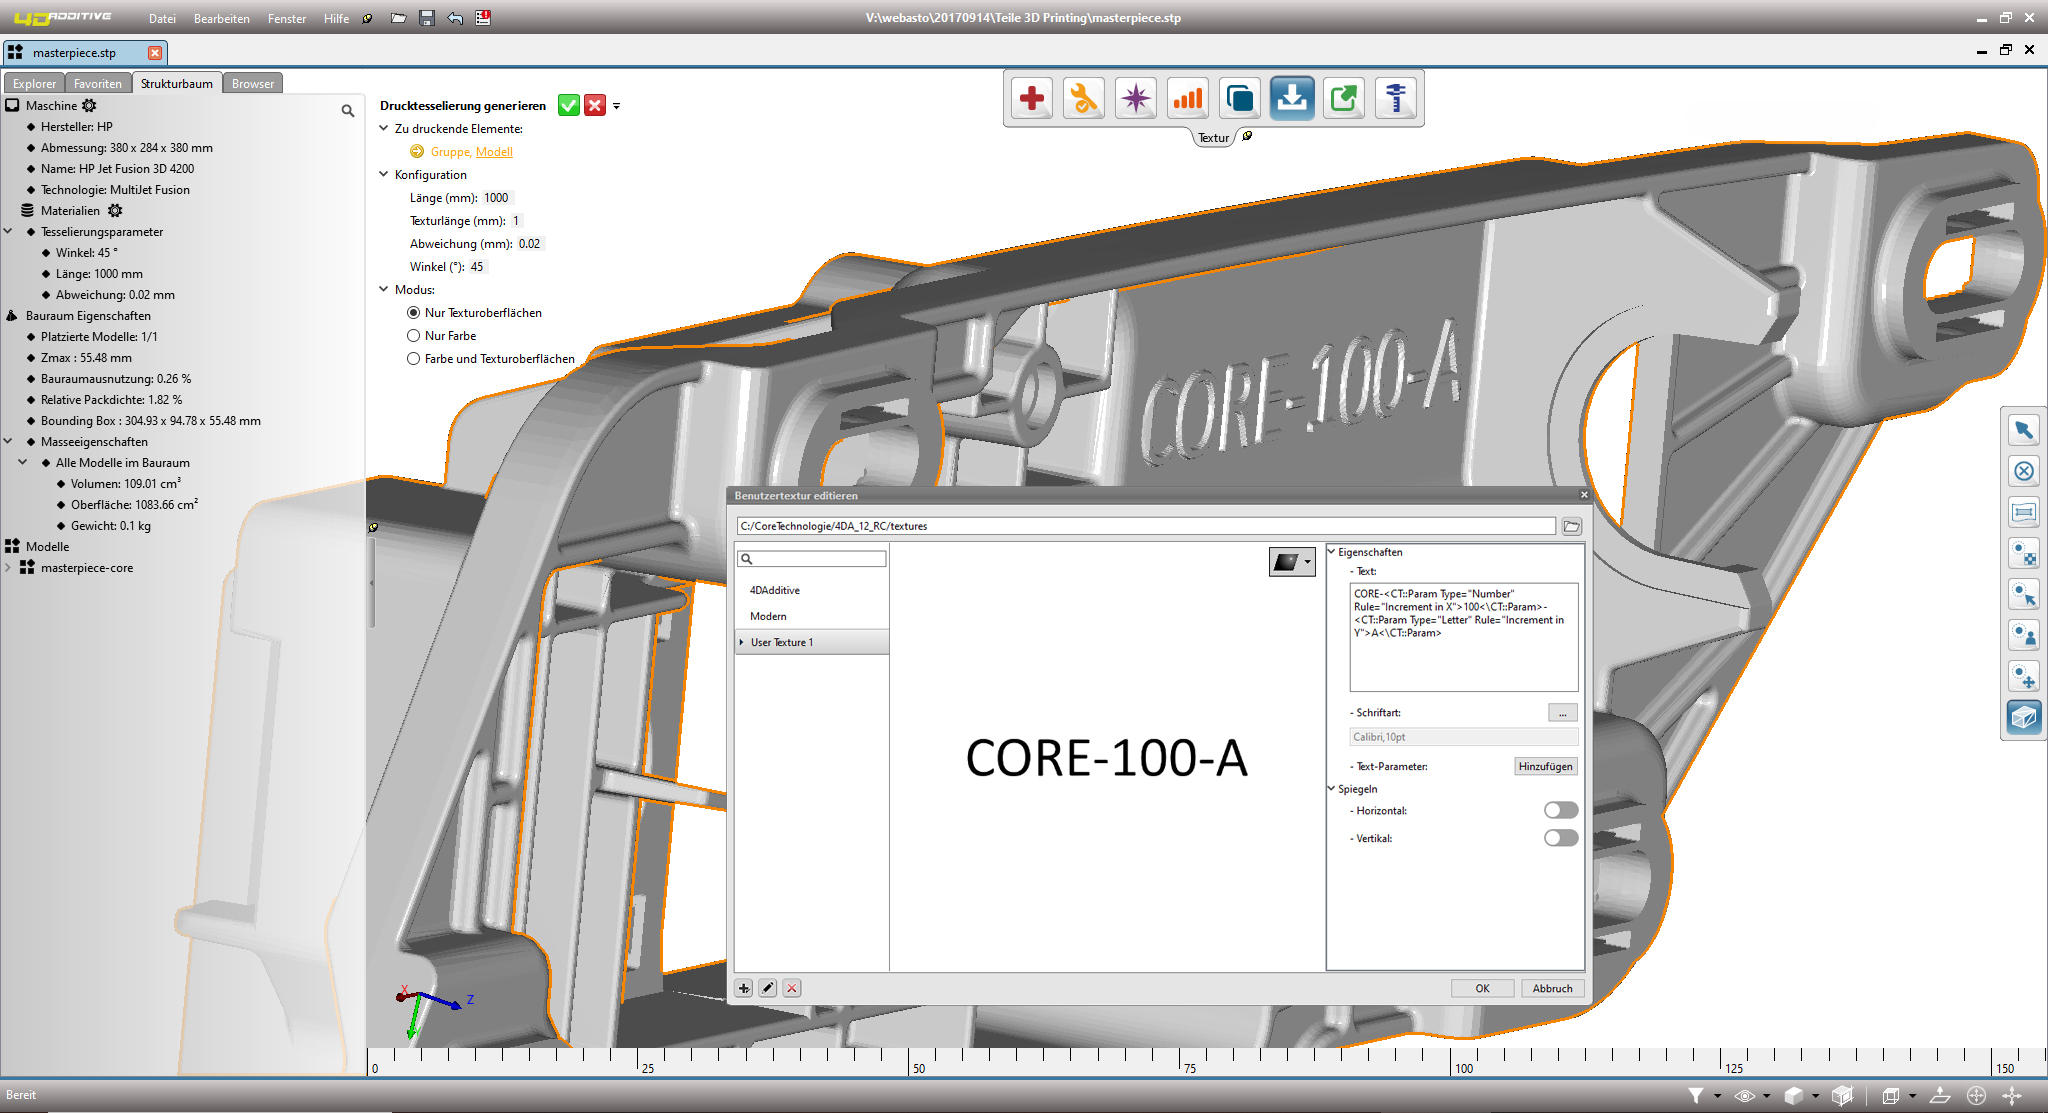 Core Technologie's updated software (pictured) allows users to label 3D printed parts. Image via Core Technologie.